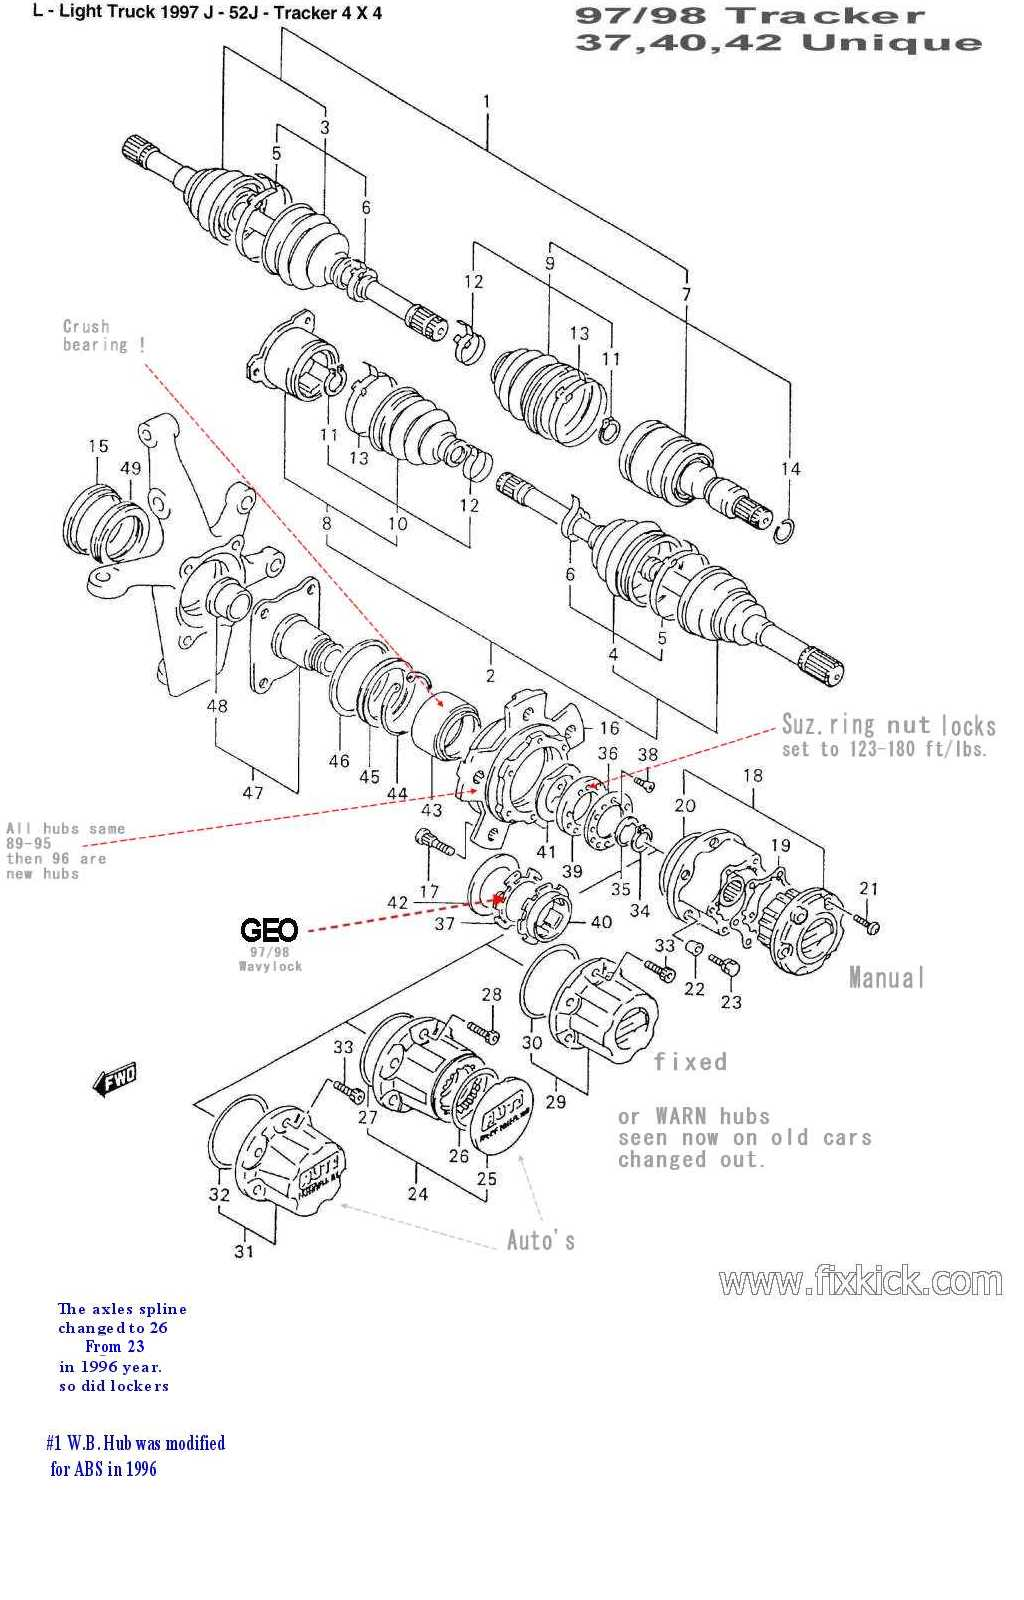 Where Is The Location Of Crankshaft Sensor On A 02 Chevy Tra    578258 besides TBJlLJ in addition 1991 Ford F150 Fuse Box Diagram besides Ford Vehicle Sd Sensor Location in addition 18p71 Replace Spring Brake Drum Out Can T. on 1996 geo tracker 4x4